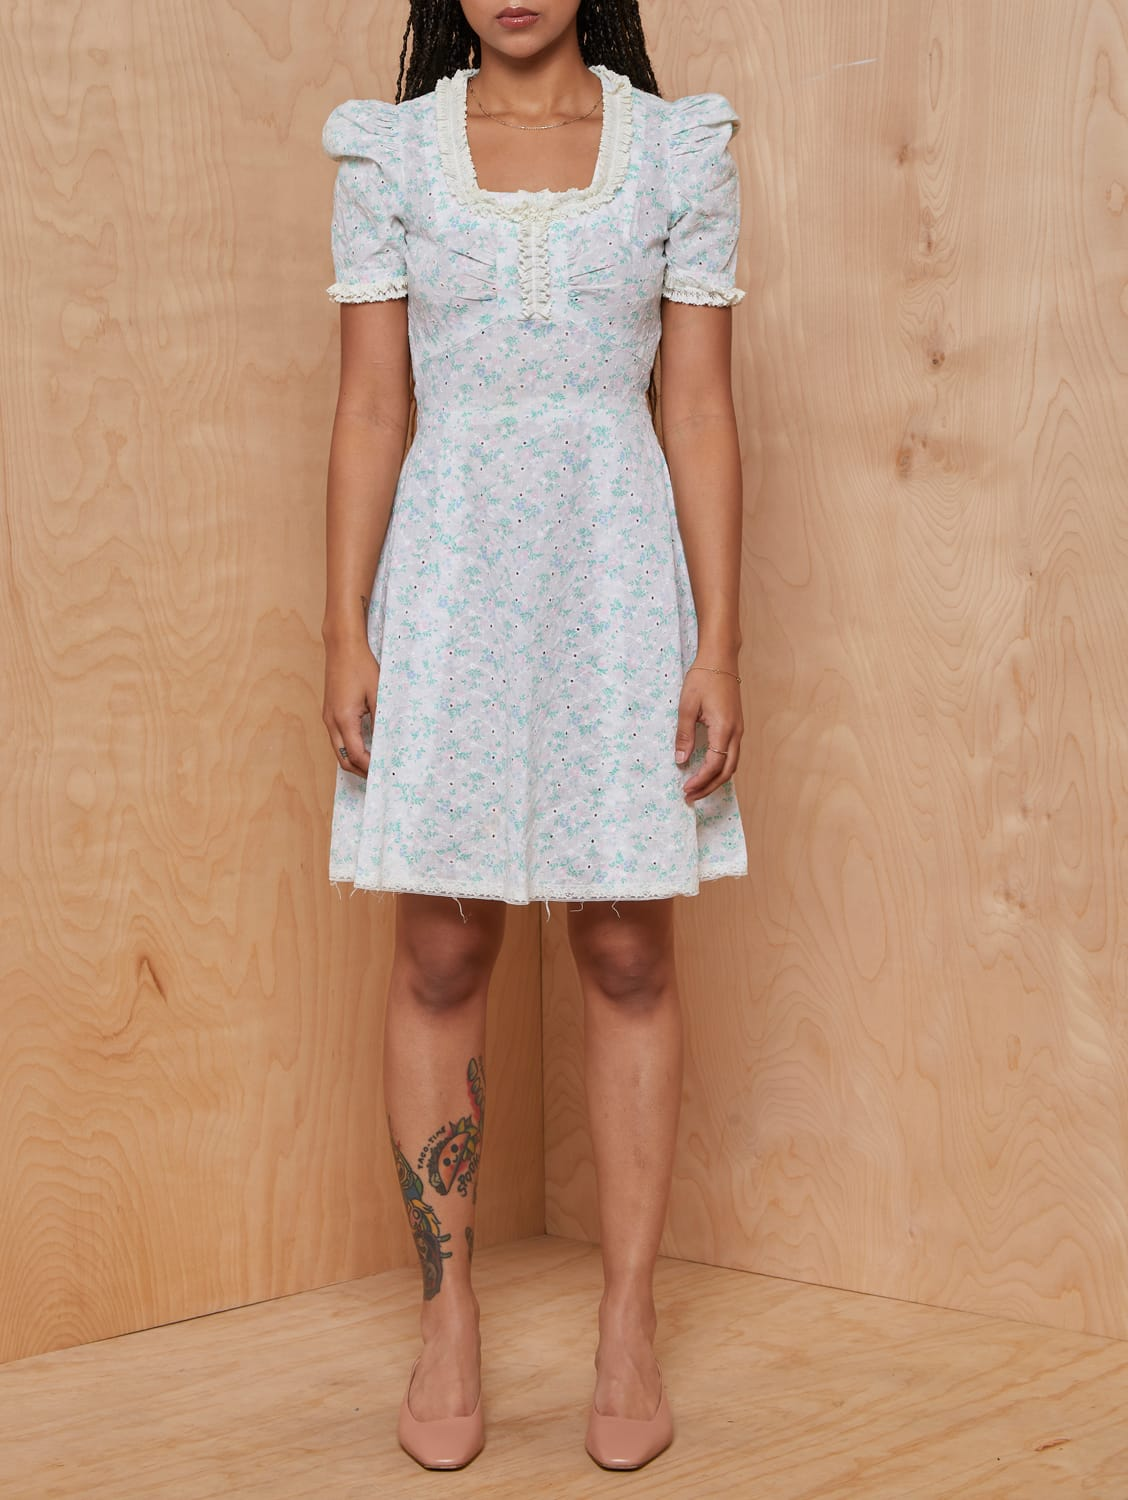 Vintage Ivory and Pastel Floral Eyelet Dolly Dress